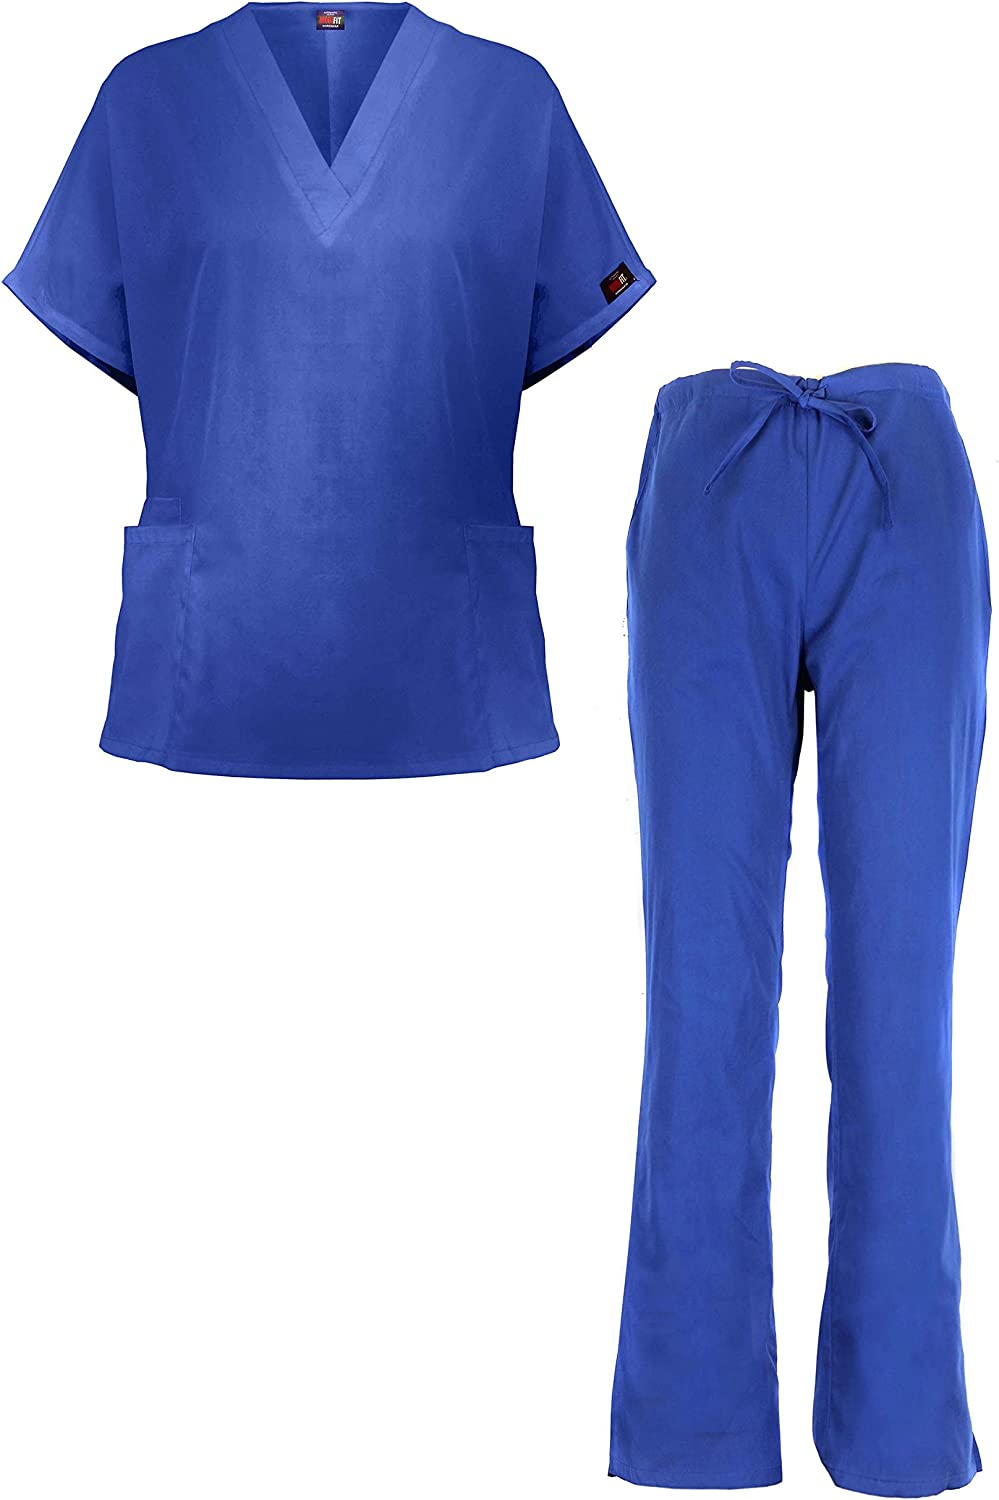 G Med Women's Medical Scrub Set VNeck 2 Pocket Top Pant 2 Piece Set